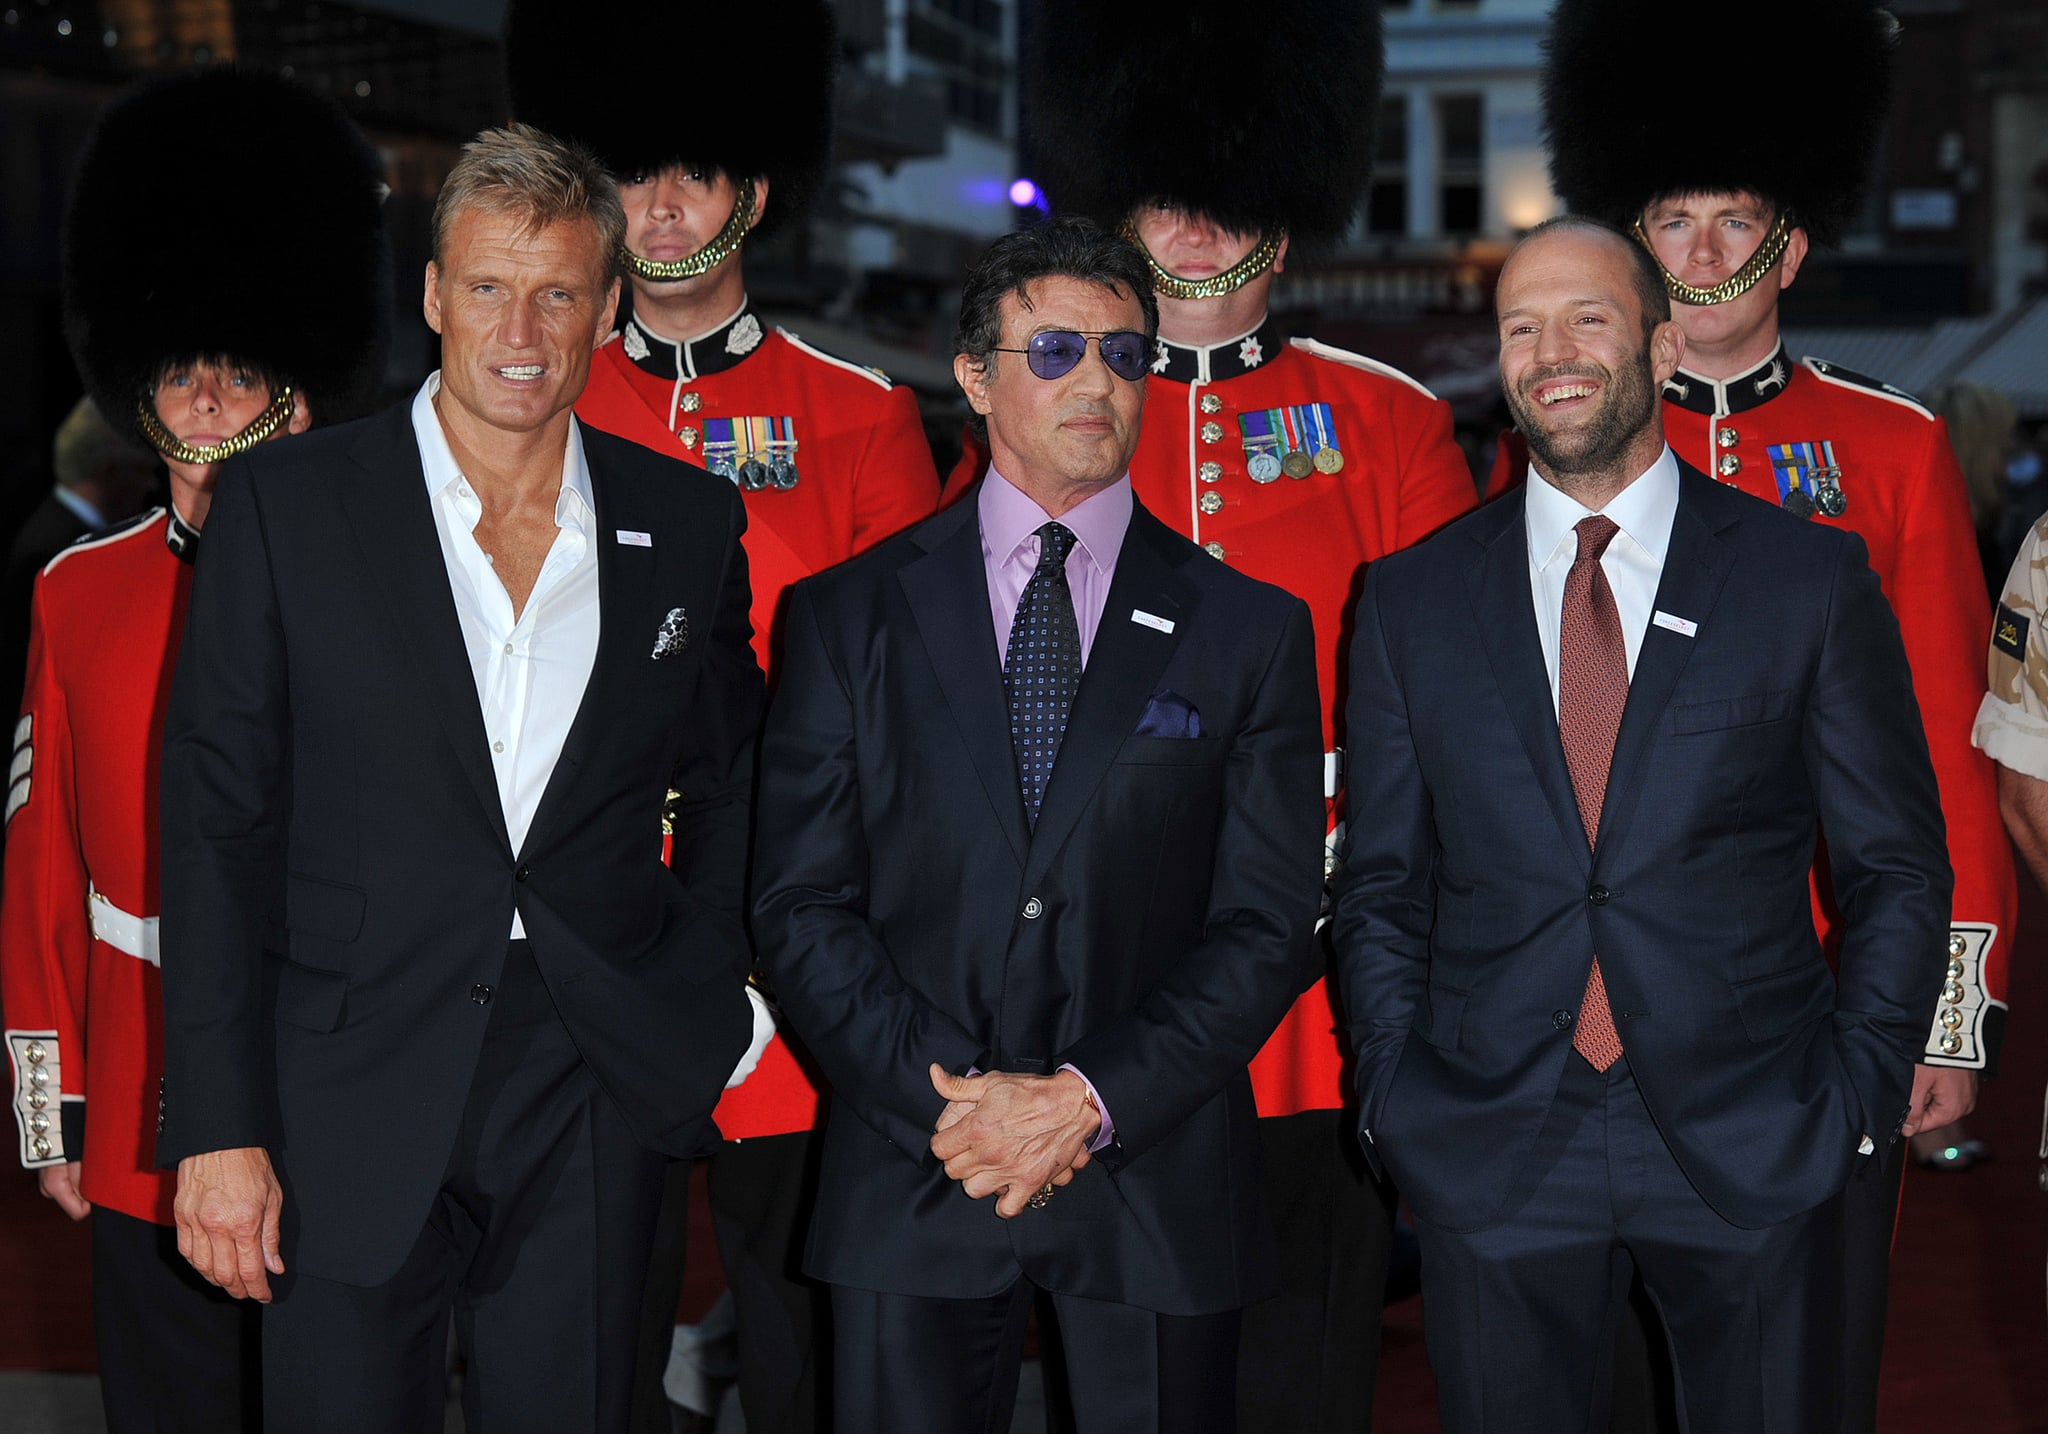 the expendables london premiere including katie price